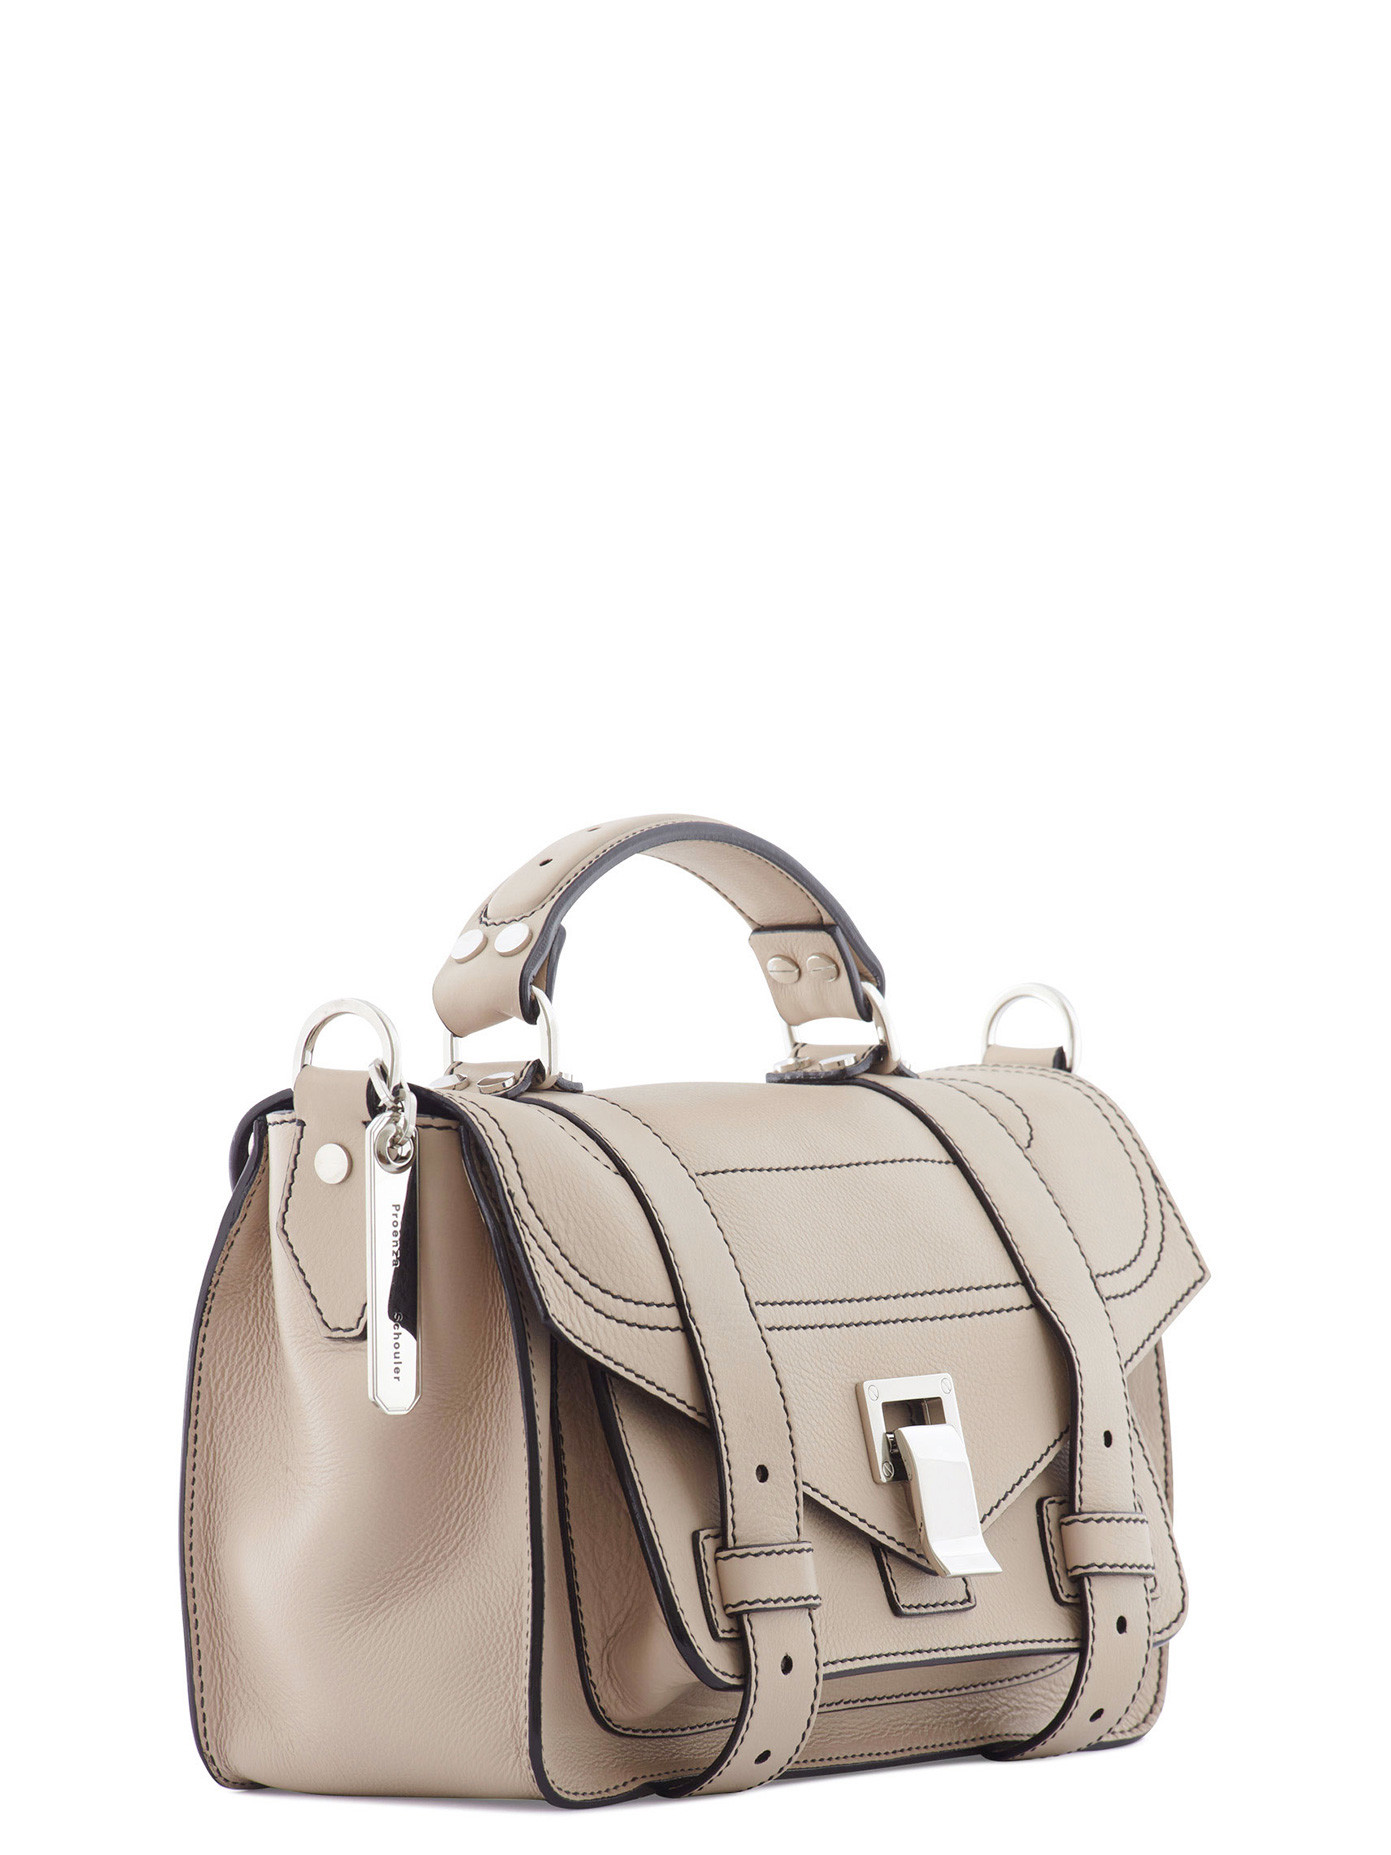 Proenza Schouler Ps1 | Proenza Schouler Shoulder Bag | Ps1 Bag